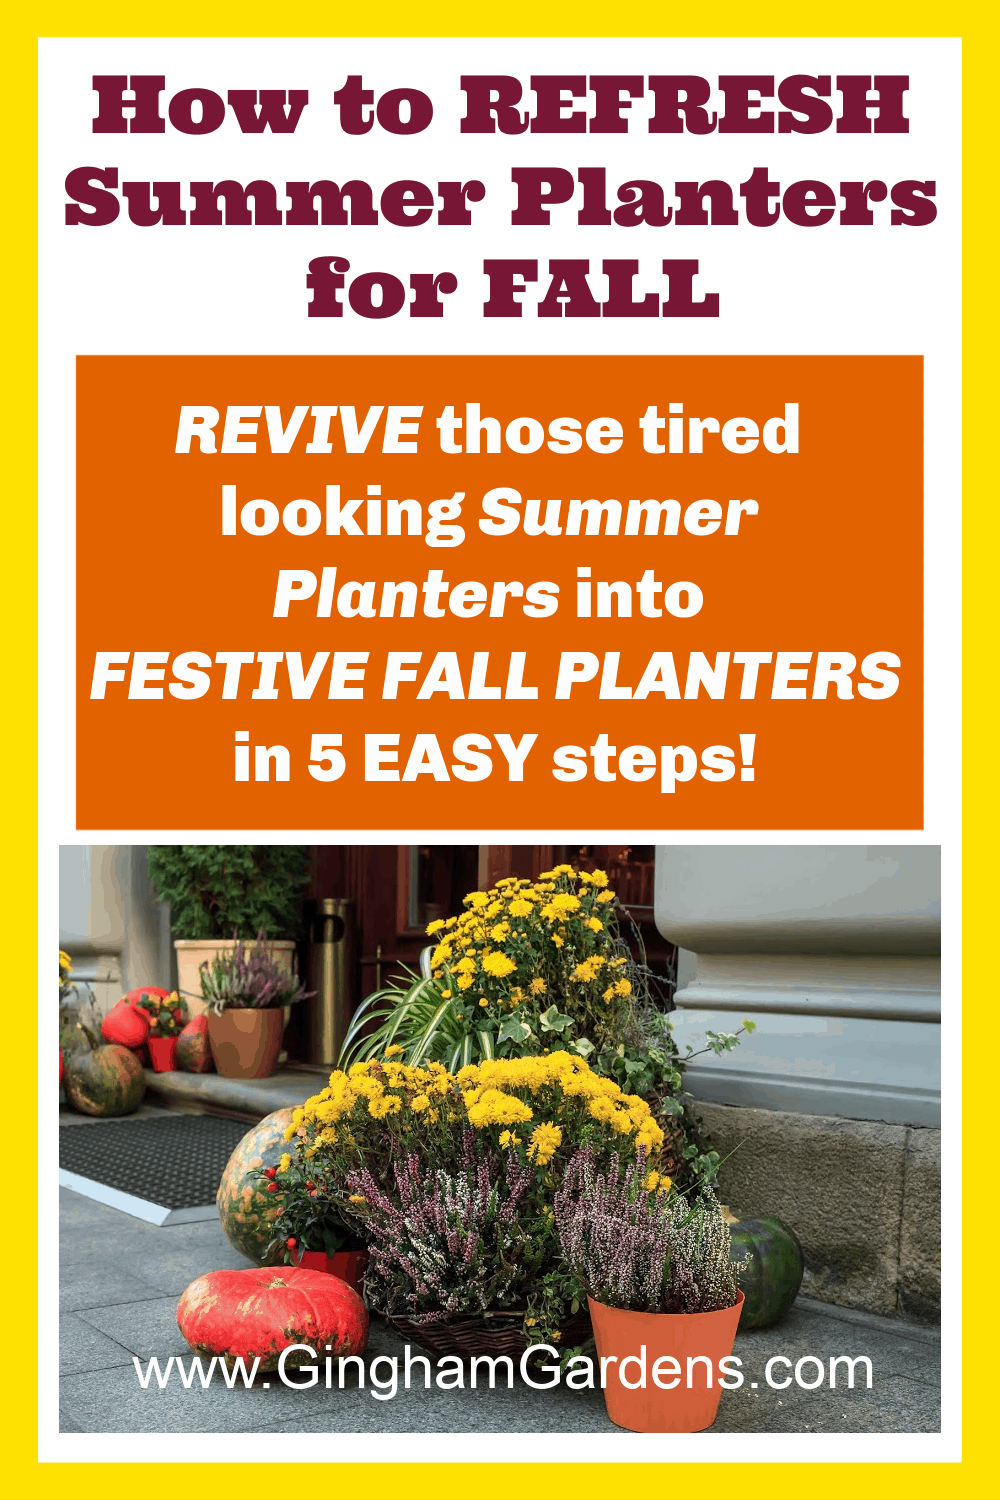 Image of fall flower planters with text overlay - how to refresh summer planters for fall